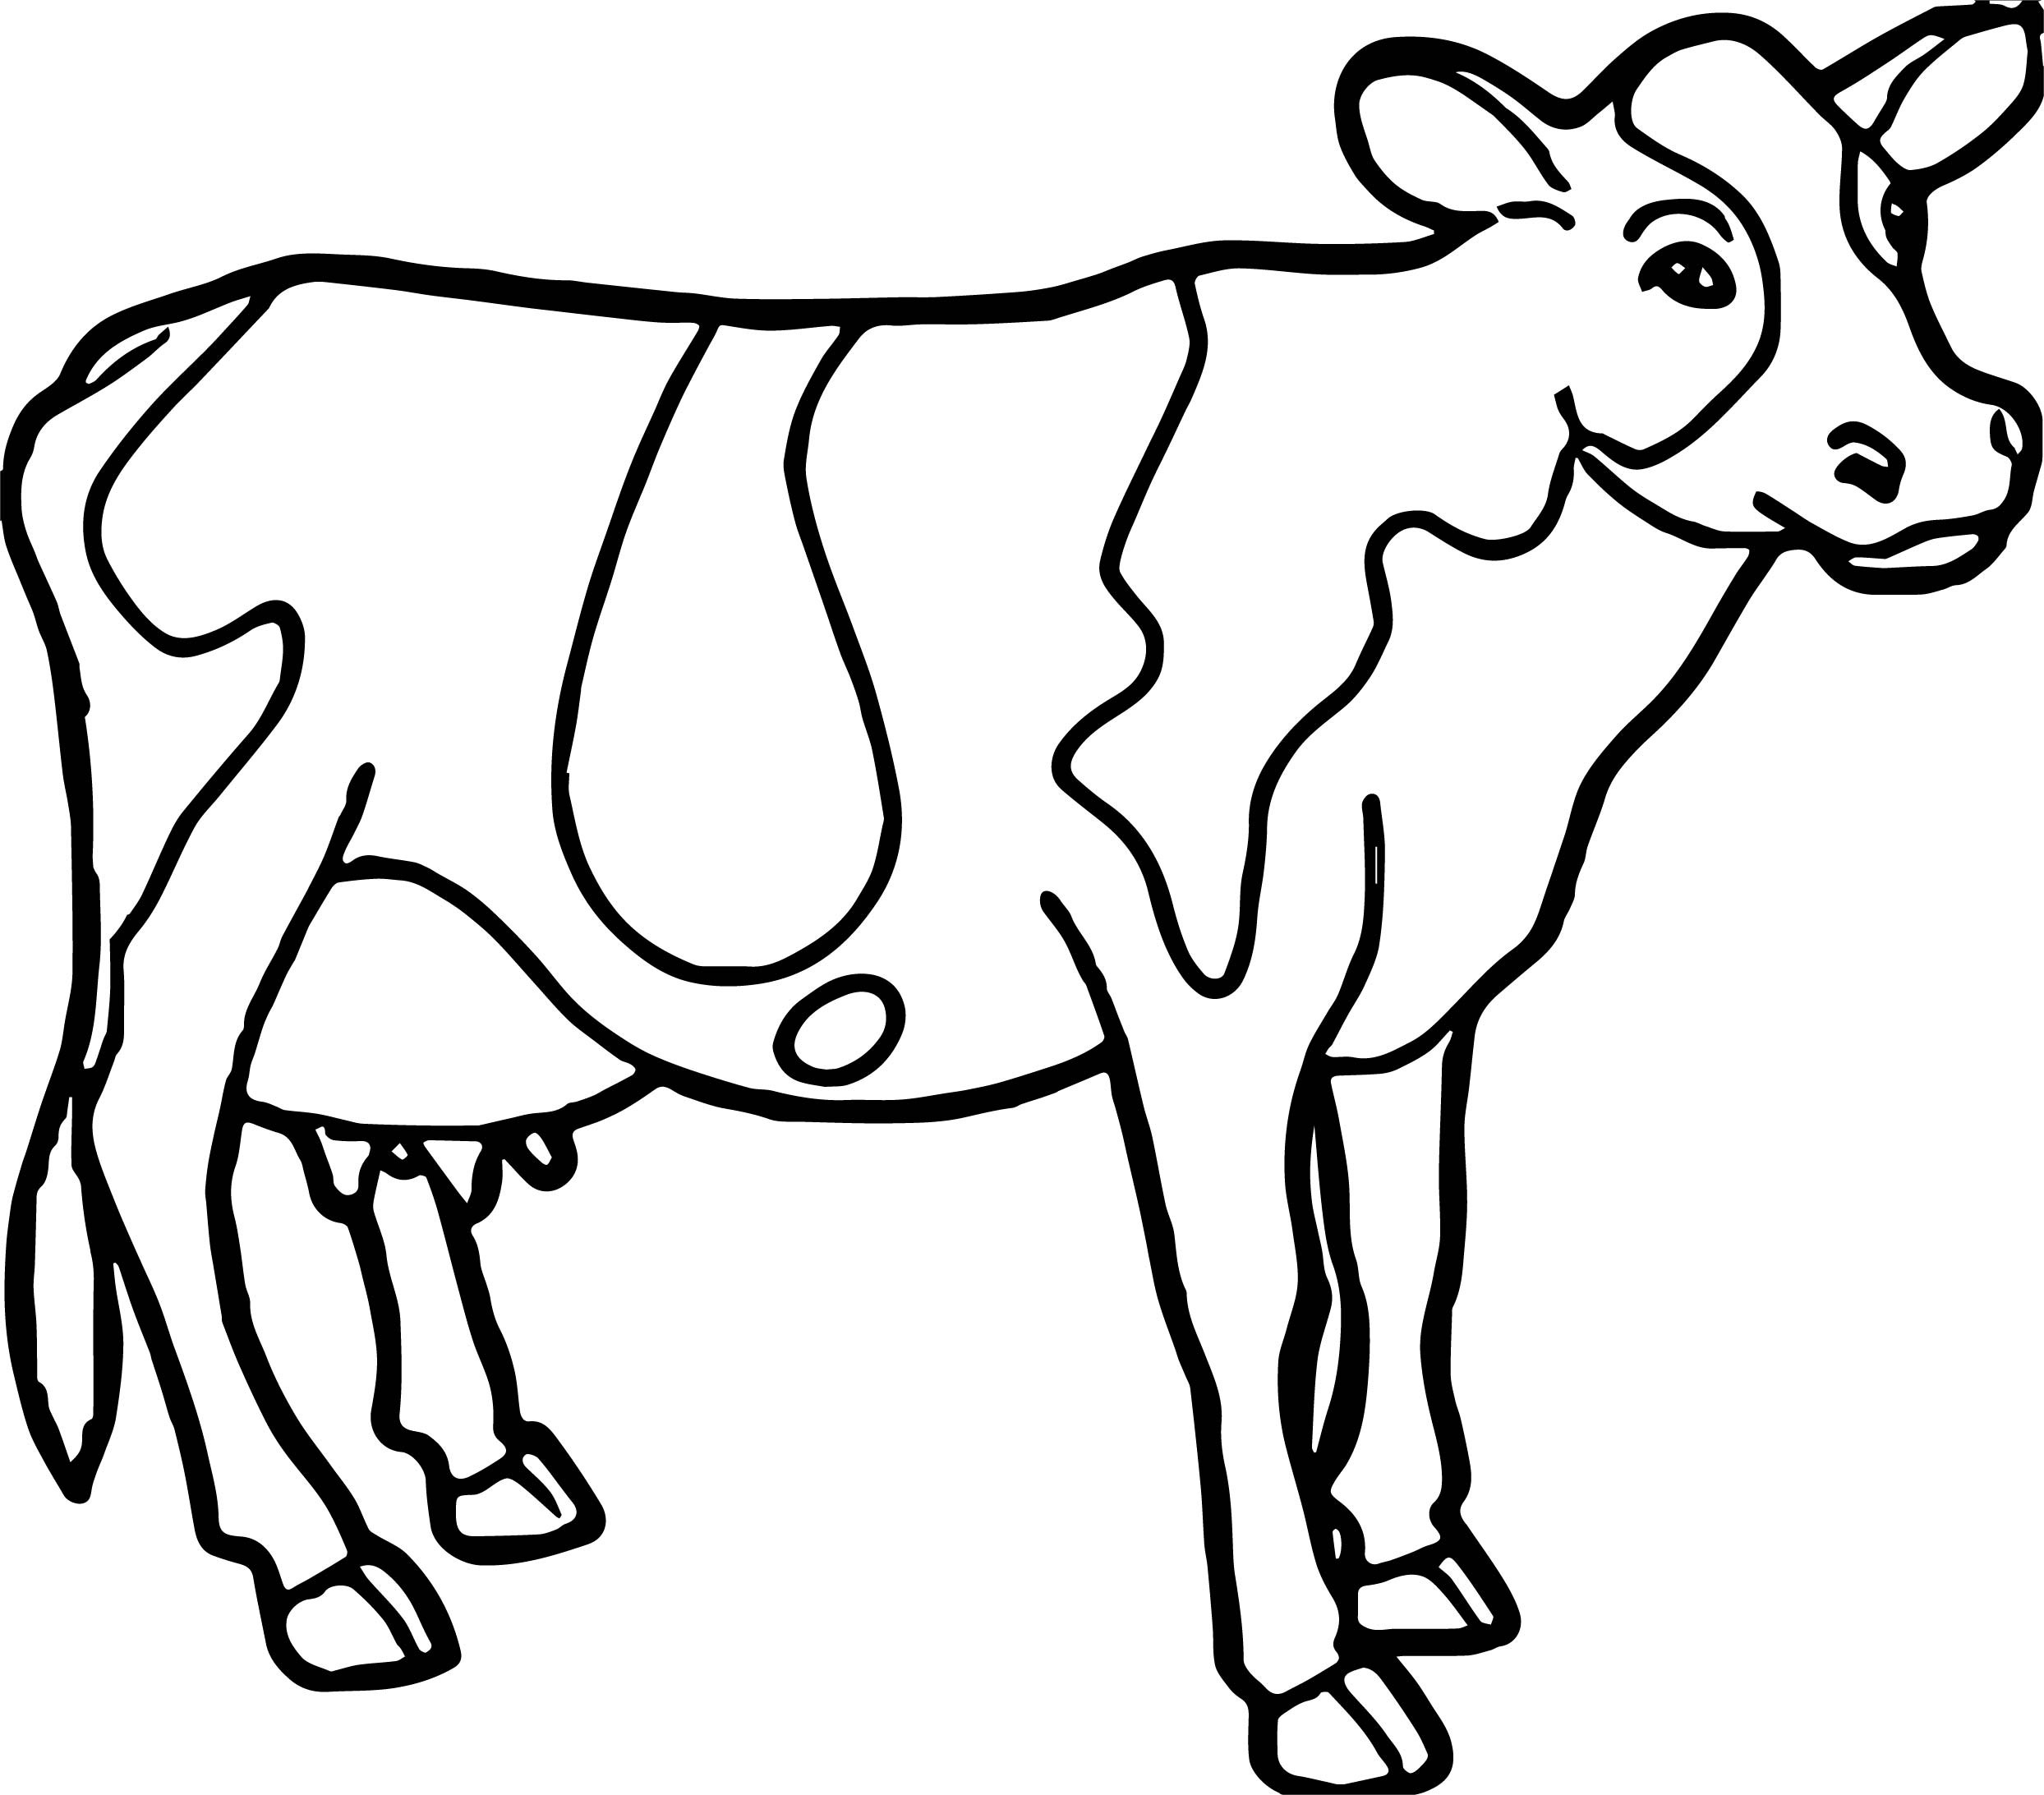 coloring cow drawing easy cow picture of cow coloring page animal coloring cow easy drawing coloring